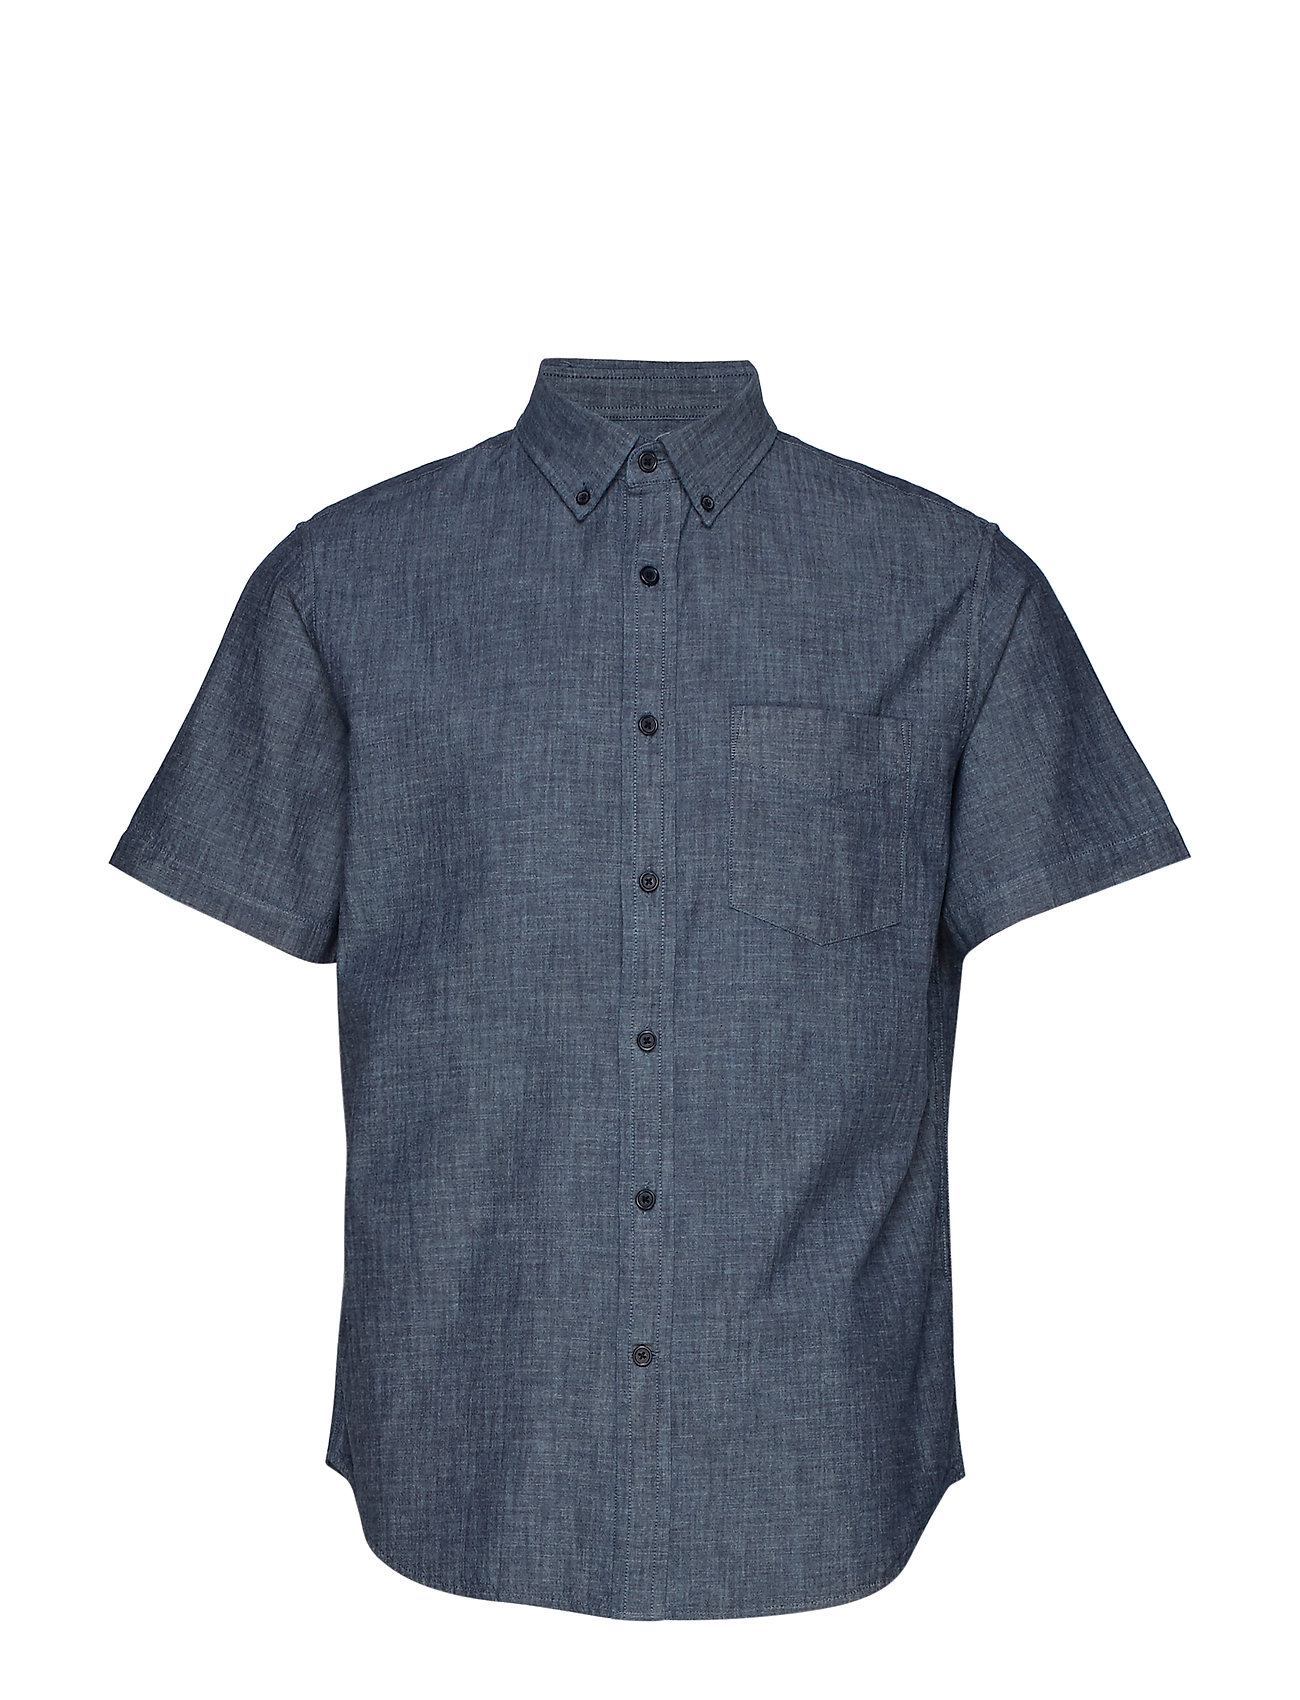 Banana Republic SS CHAMBRAY SHIRT